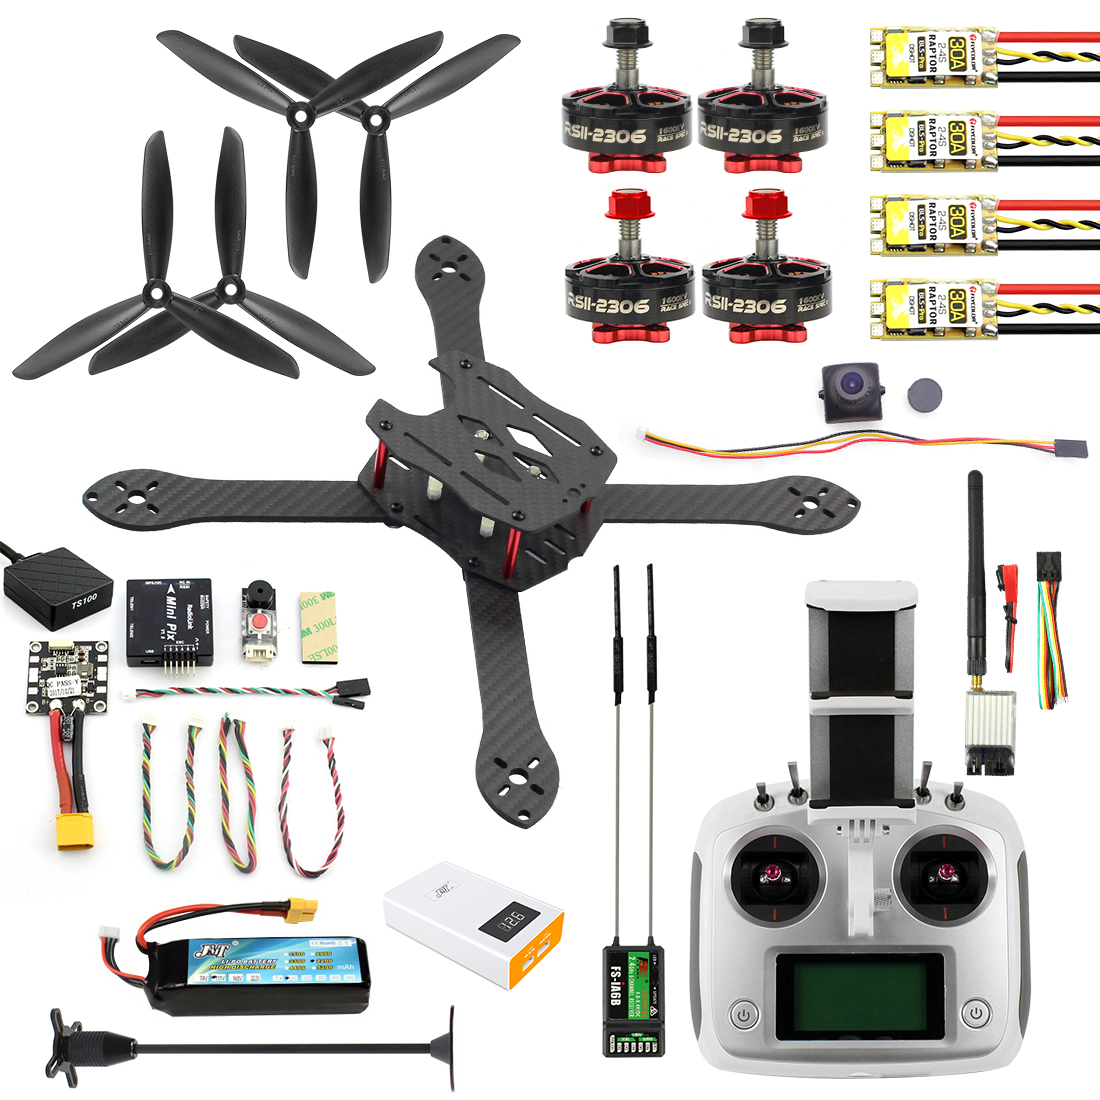 Diy Drone Software Jmt 300mm Diy Combo Kit Radiolink Mini Pix Camera Drone 2 4g 6ch